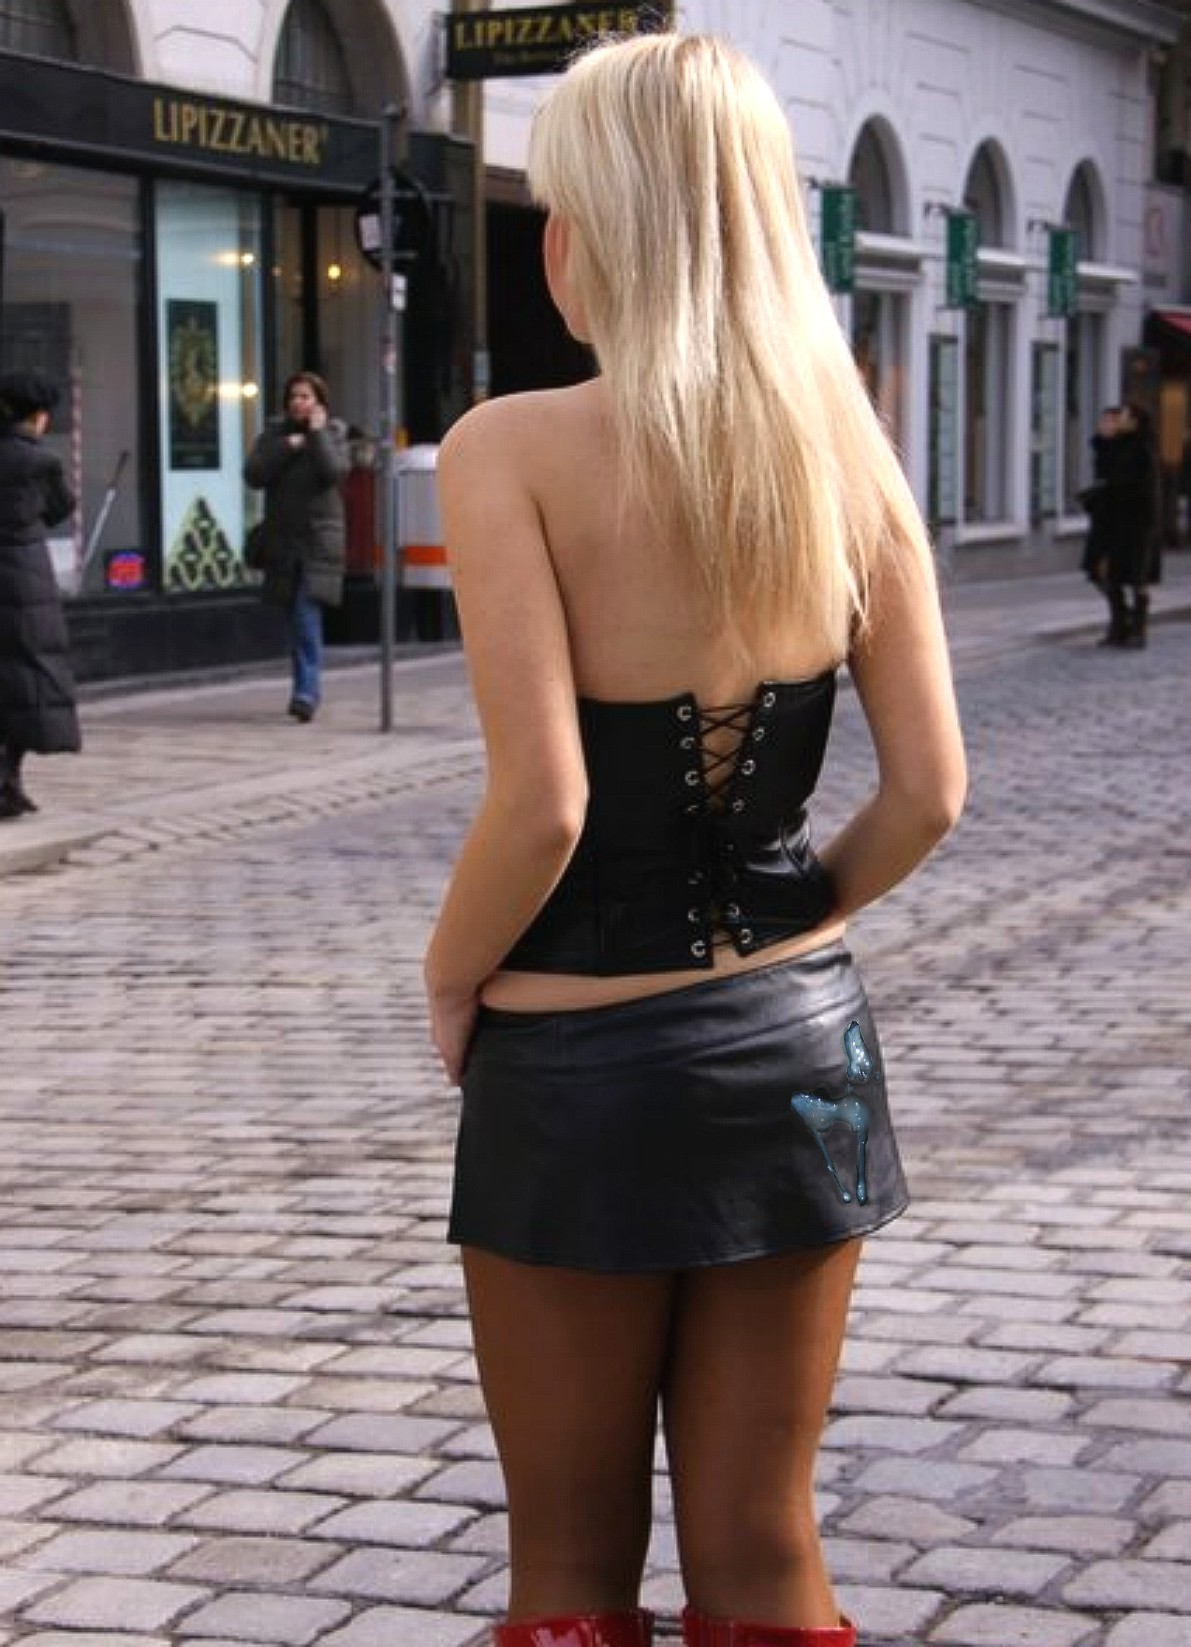 daily motion amateur enf naked